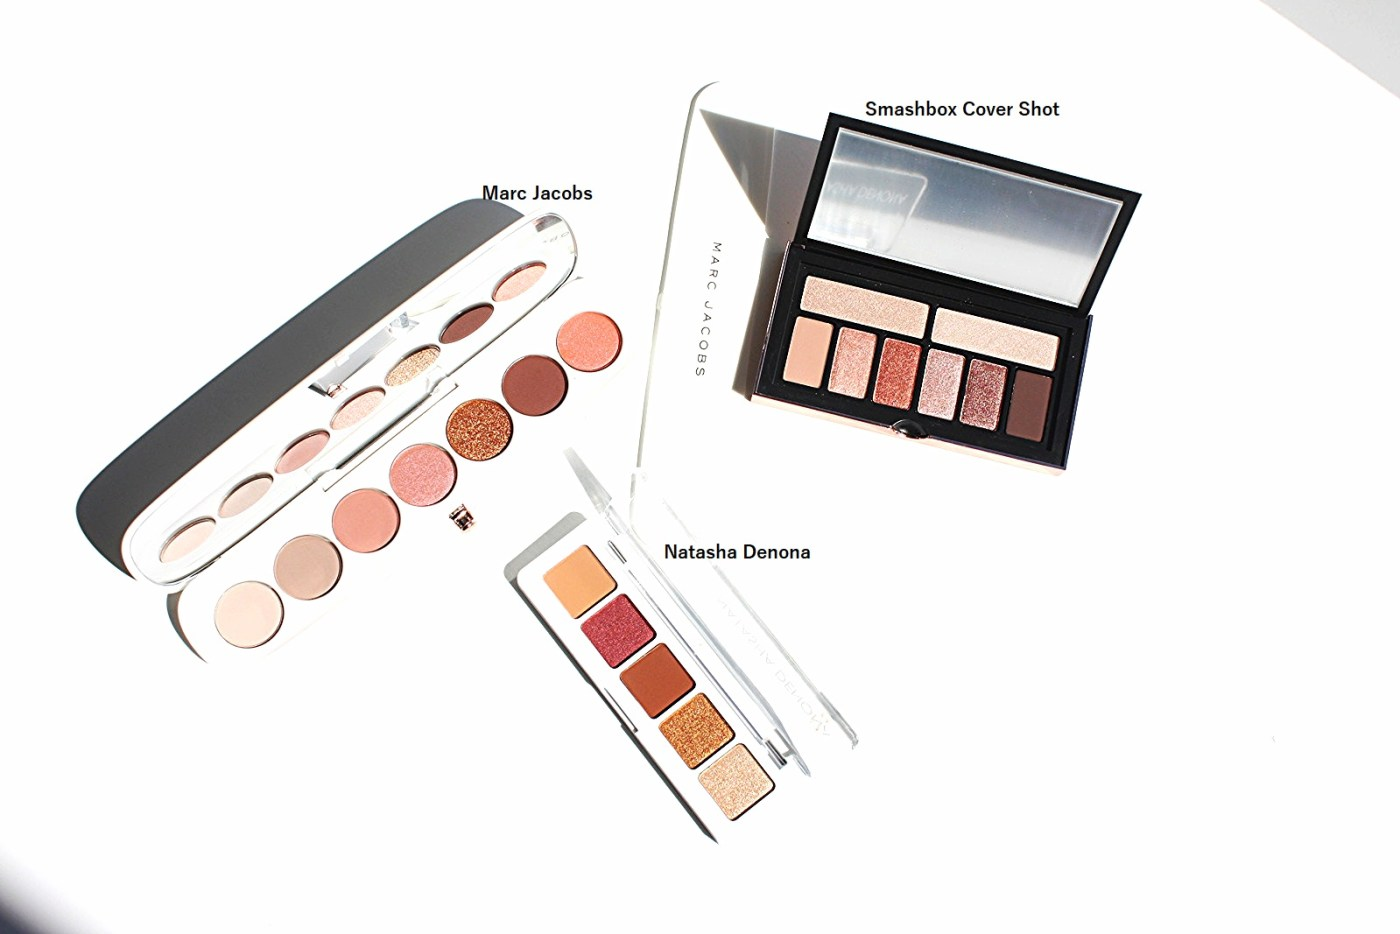 THREE EYESHADOW PALETTES FROM MARC JACOBS, NATASHA DENONA AND SMASHBOX